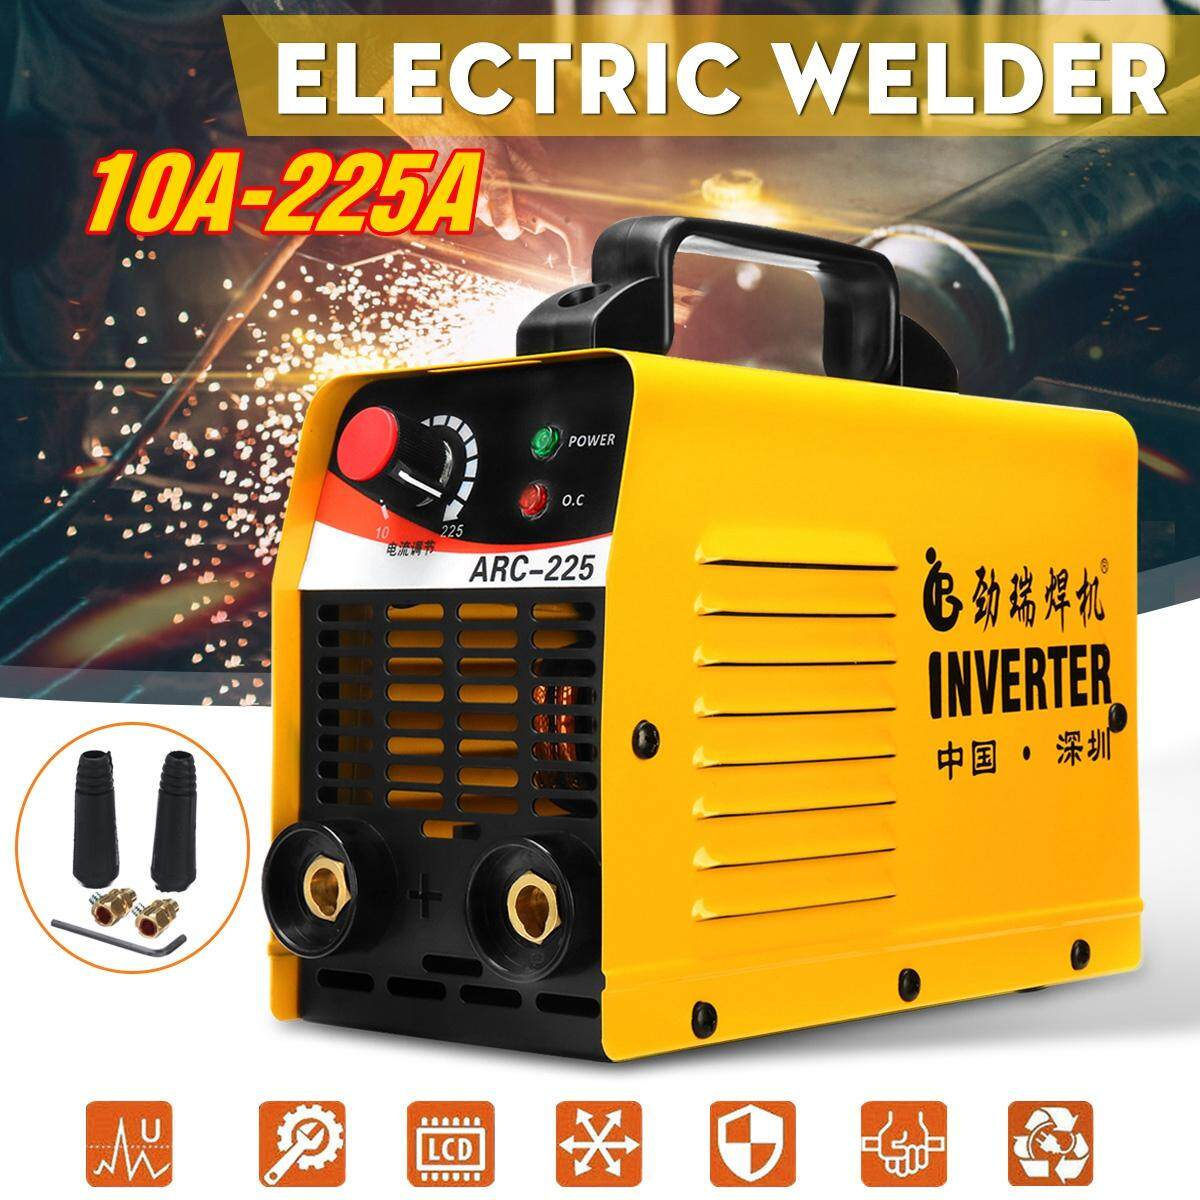 【Free Shipping + Flash Deal】Portable ARC-225 10-225A 220V LCD Electric Welder ACR ZX7 IGBT MMA Welding Machine